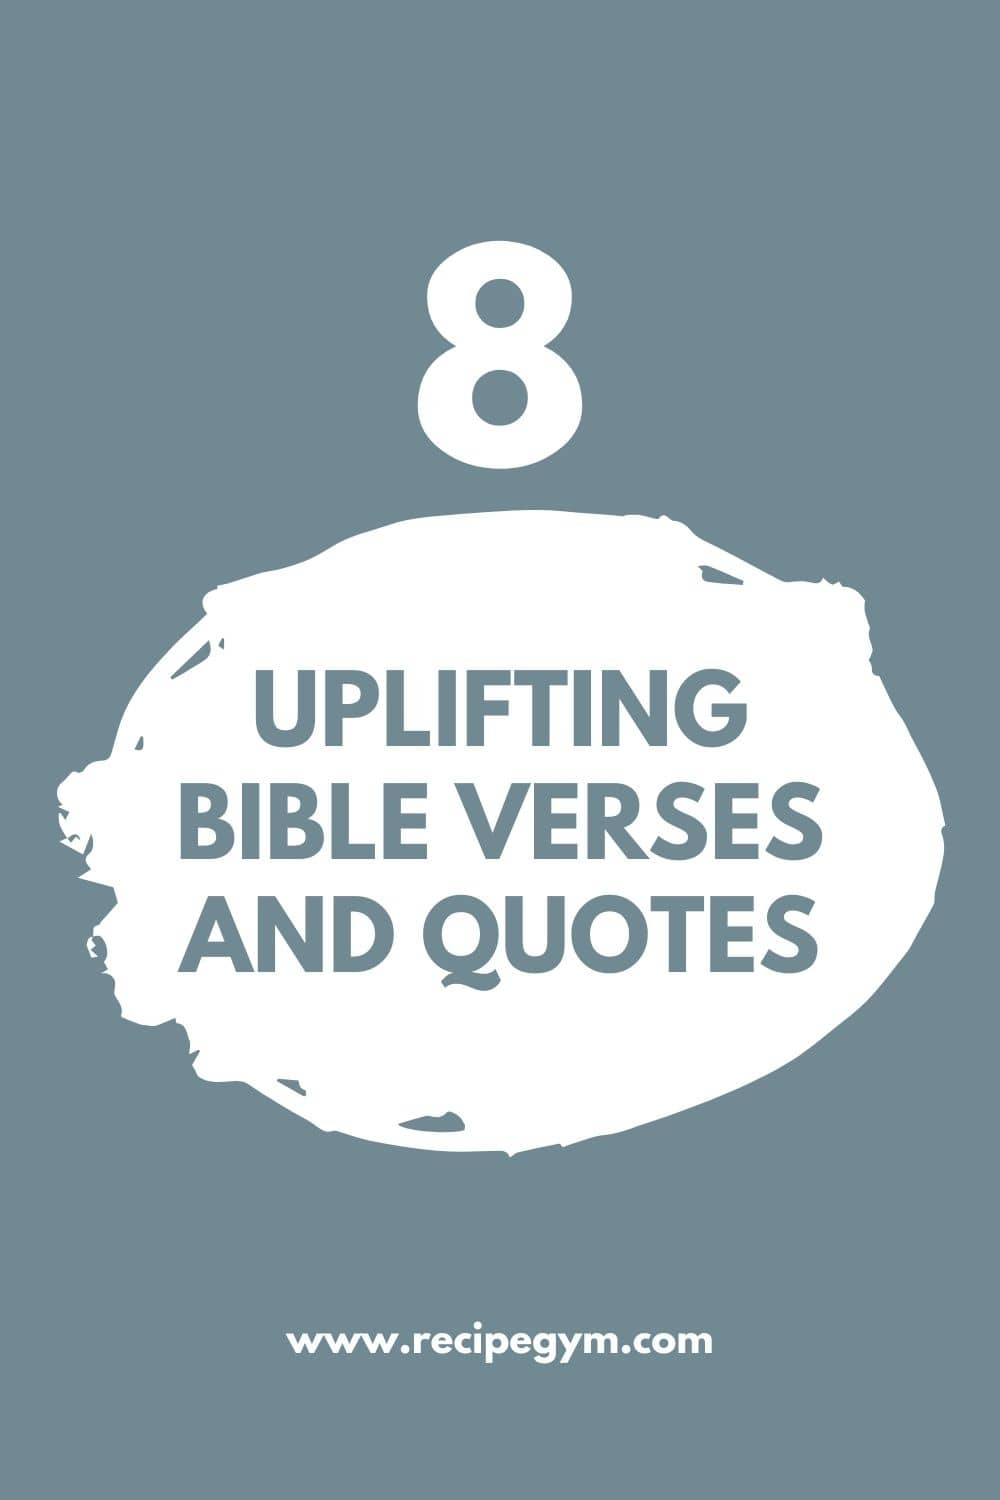 Uplifting bible verses and quotes